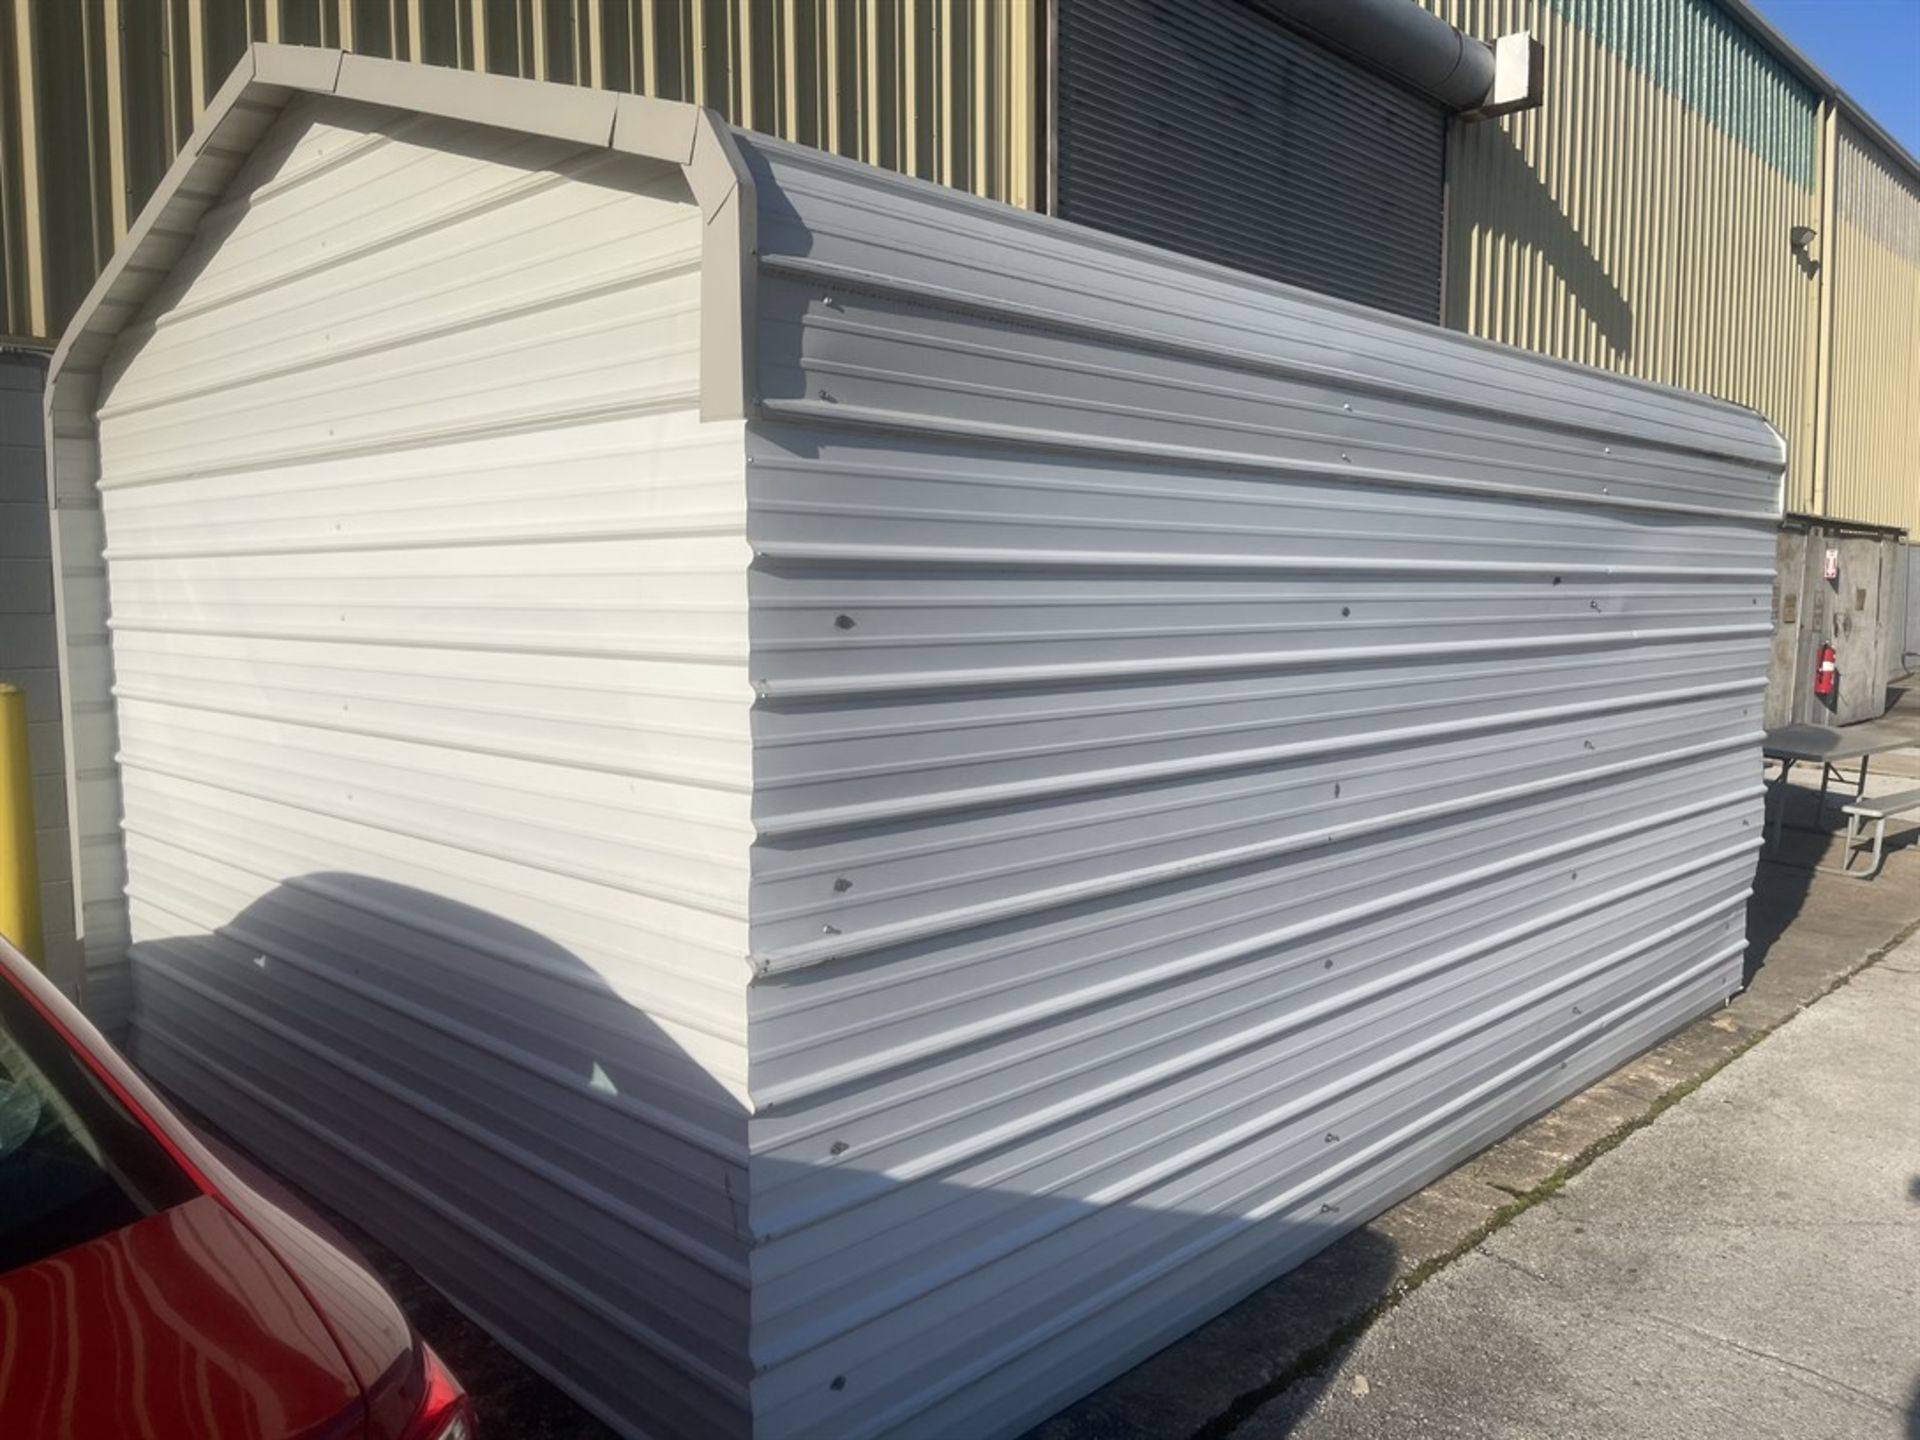 Shed, Approx. 12'W x 17'L x 10'H - Image 2 of 3